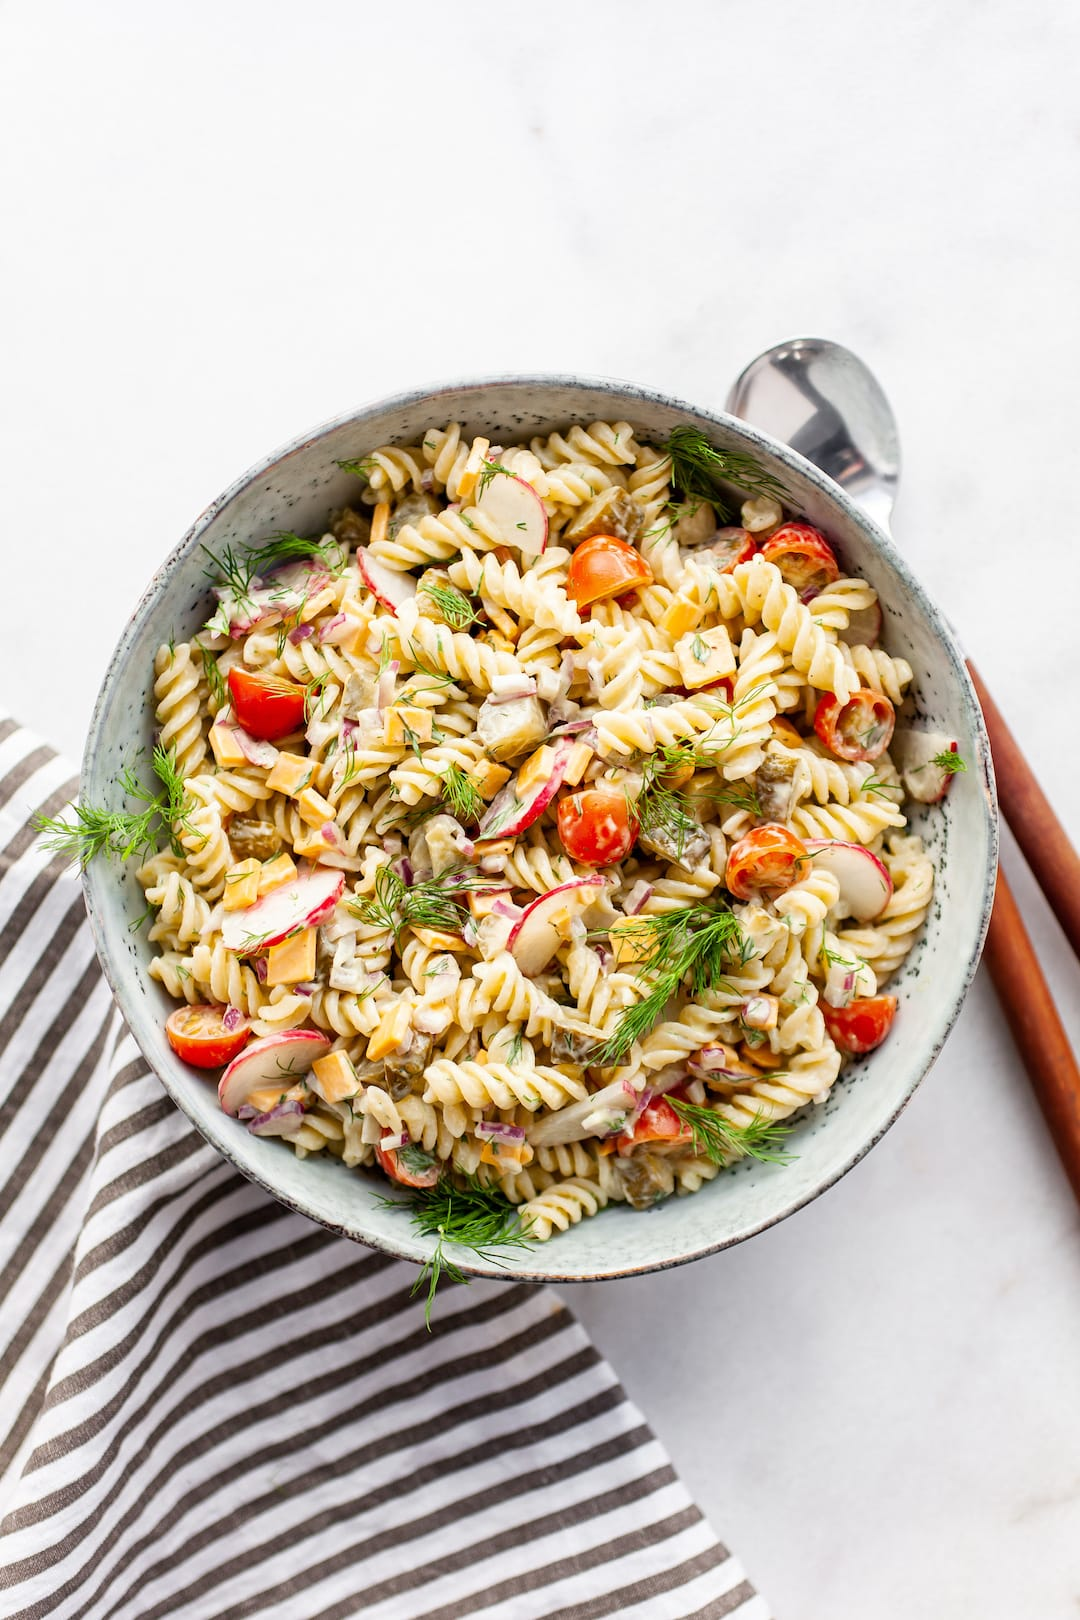 Colourful & Crunchy Healthy Dill Pickle Pasta Salad